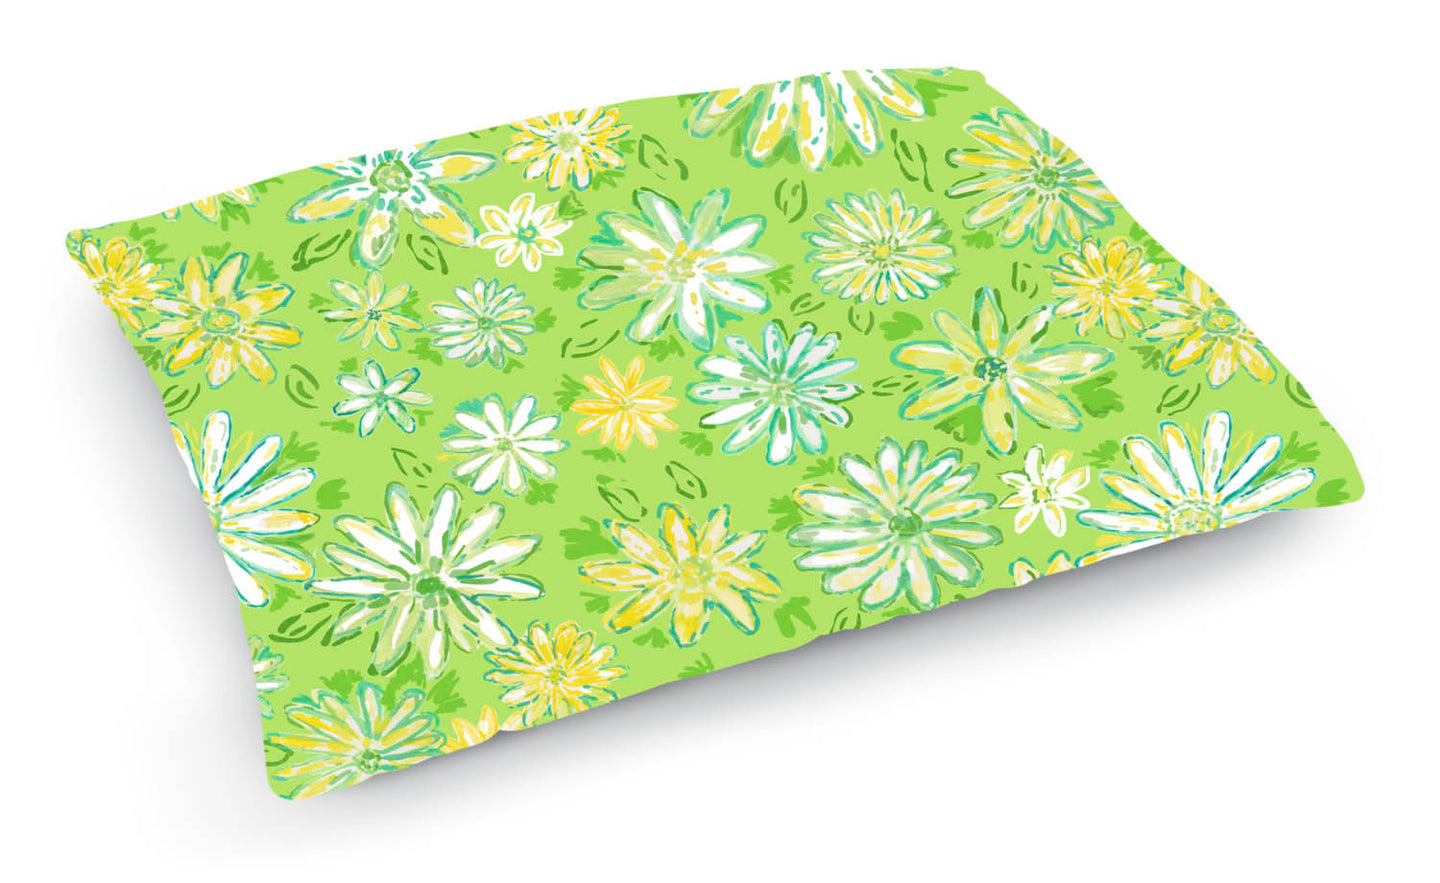 Wild Daisies Pet Bed - Diga Linda